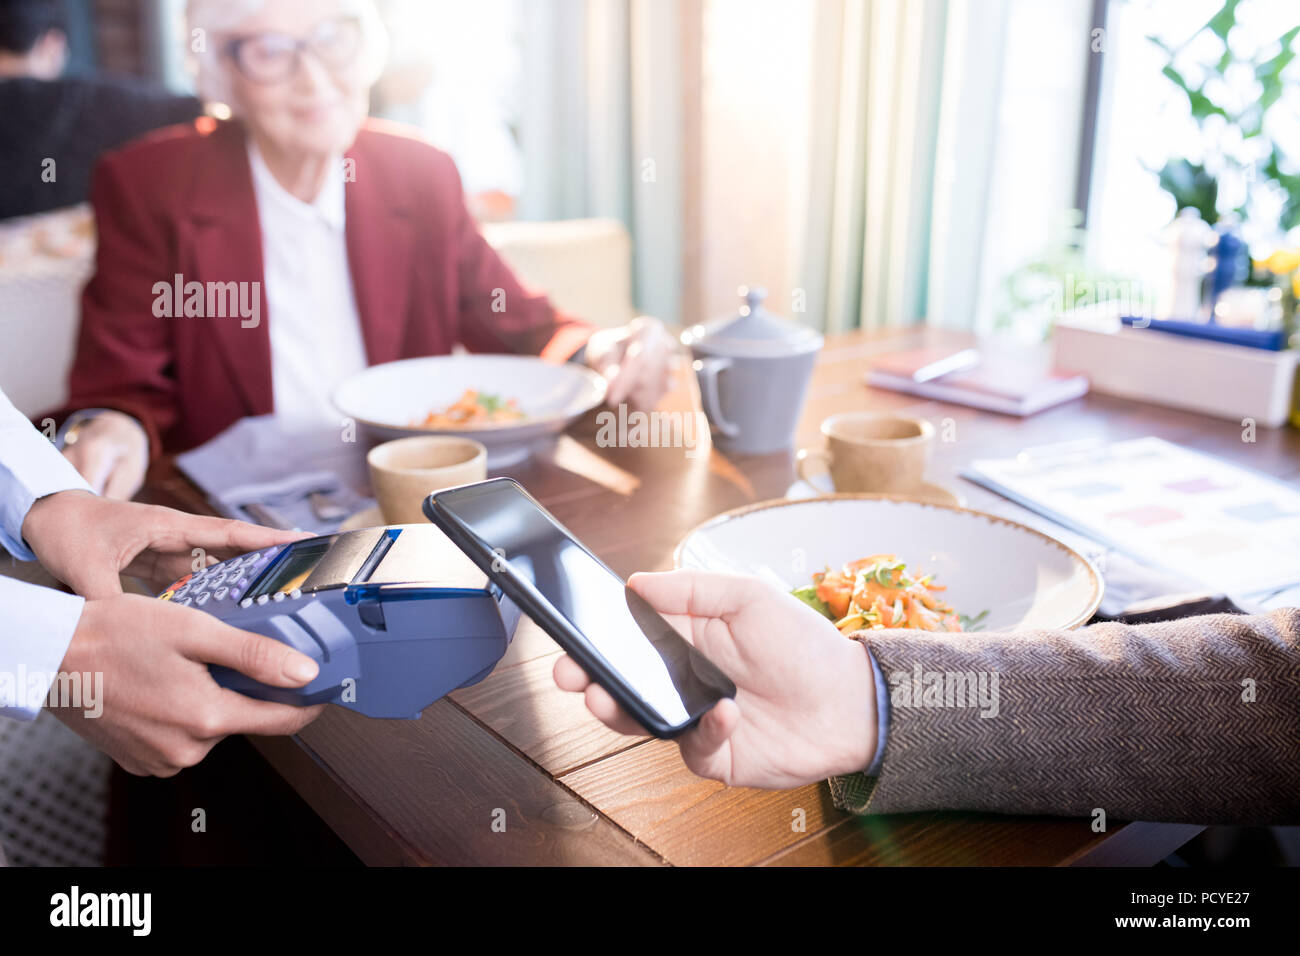 Paying for dinner - Stock Image